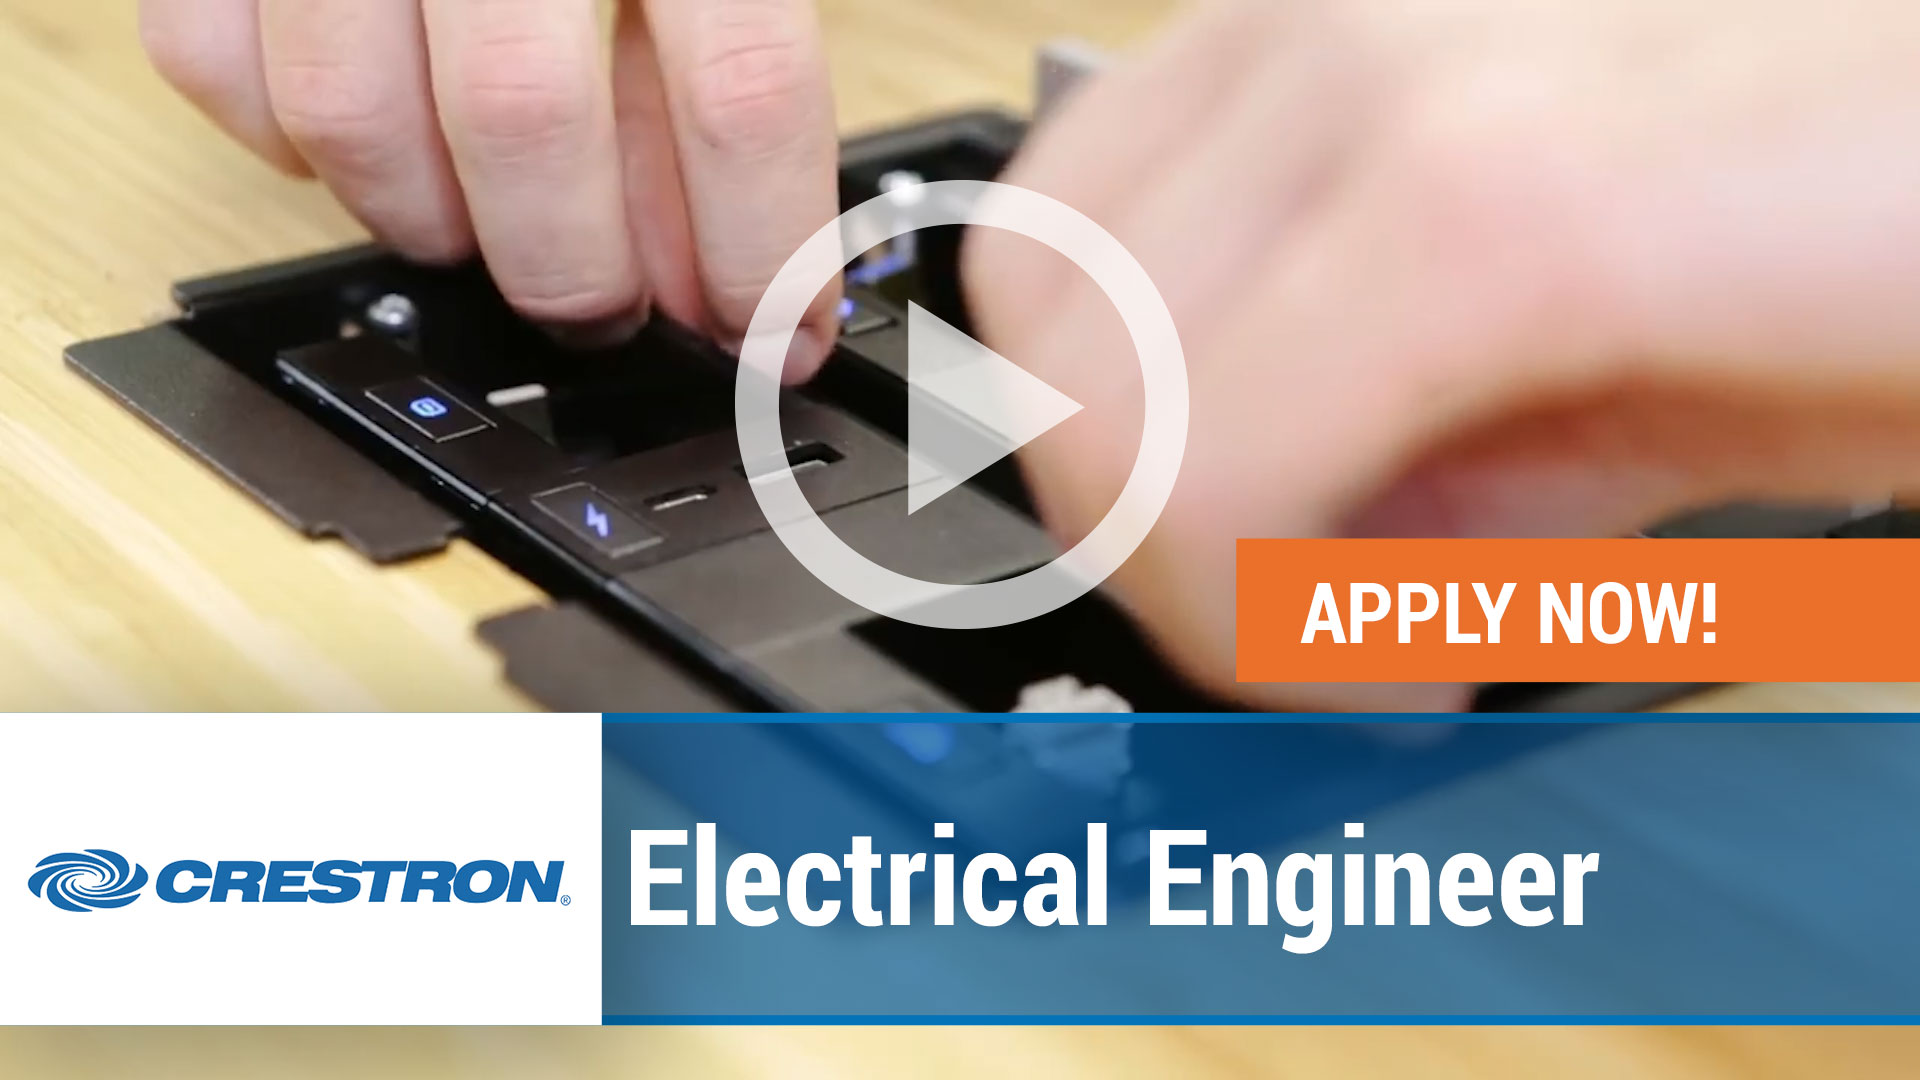 Watch our careers video for available job opening Electrical Engineer in Rockleigh, New Jersey